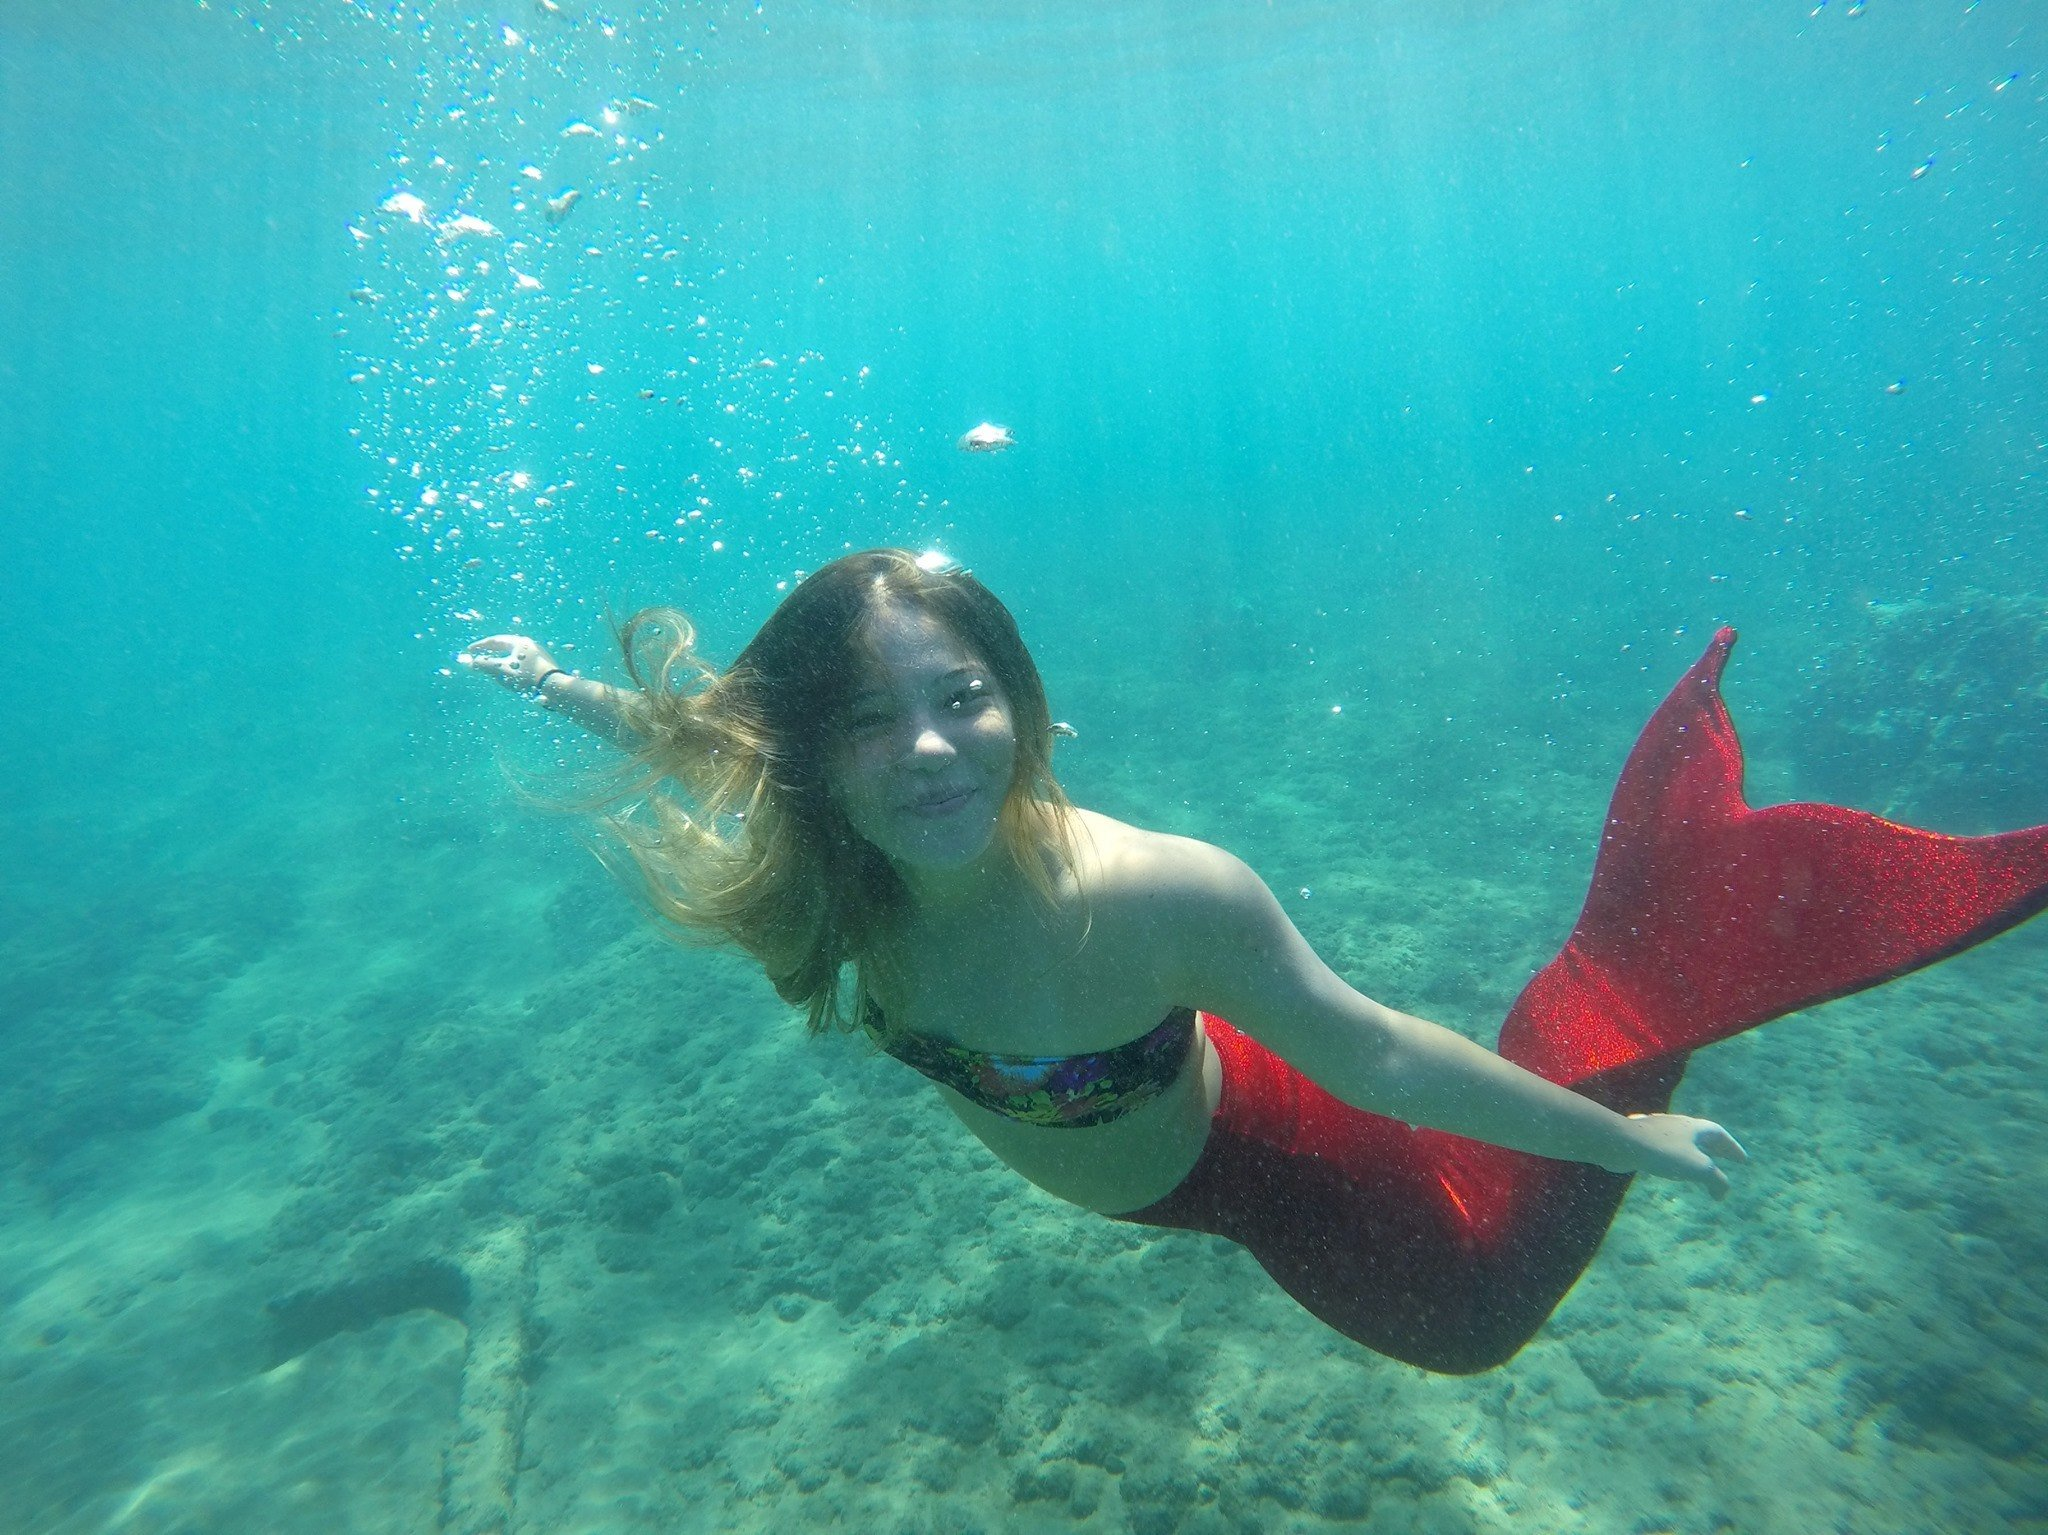 Become a mermaid for the day with Hawaii Mermaid Adventures in Maui with kids and teens